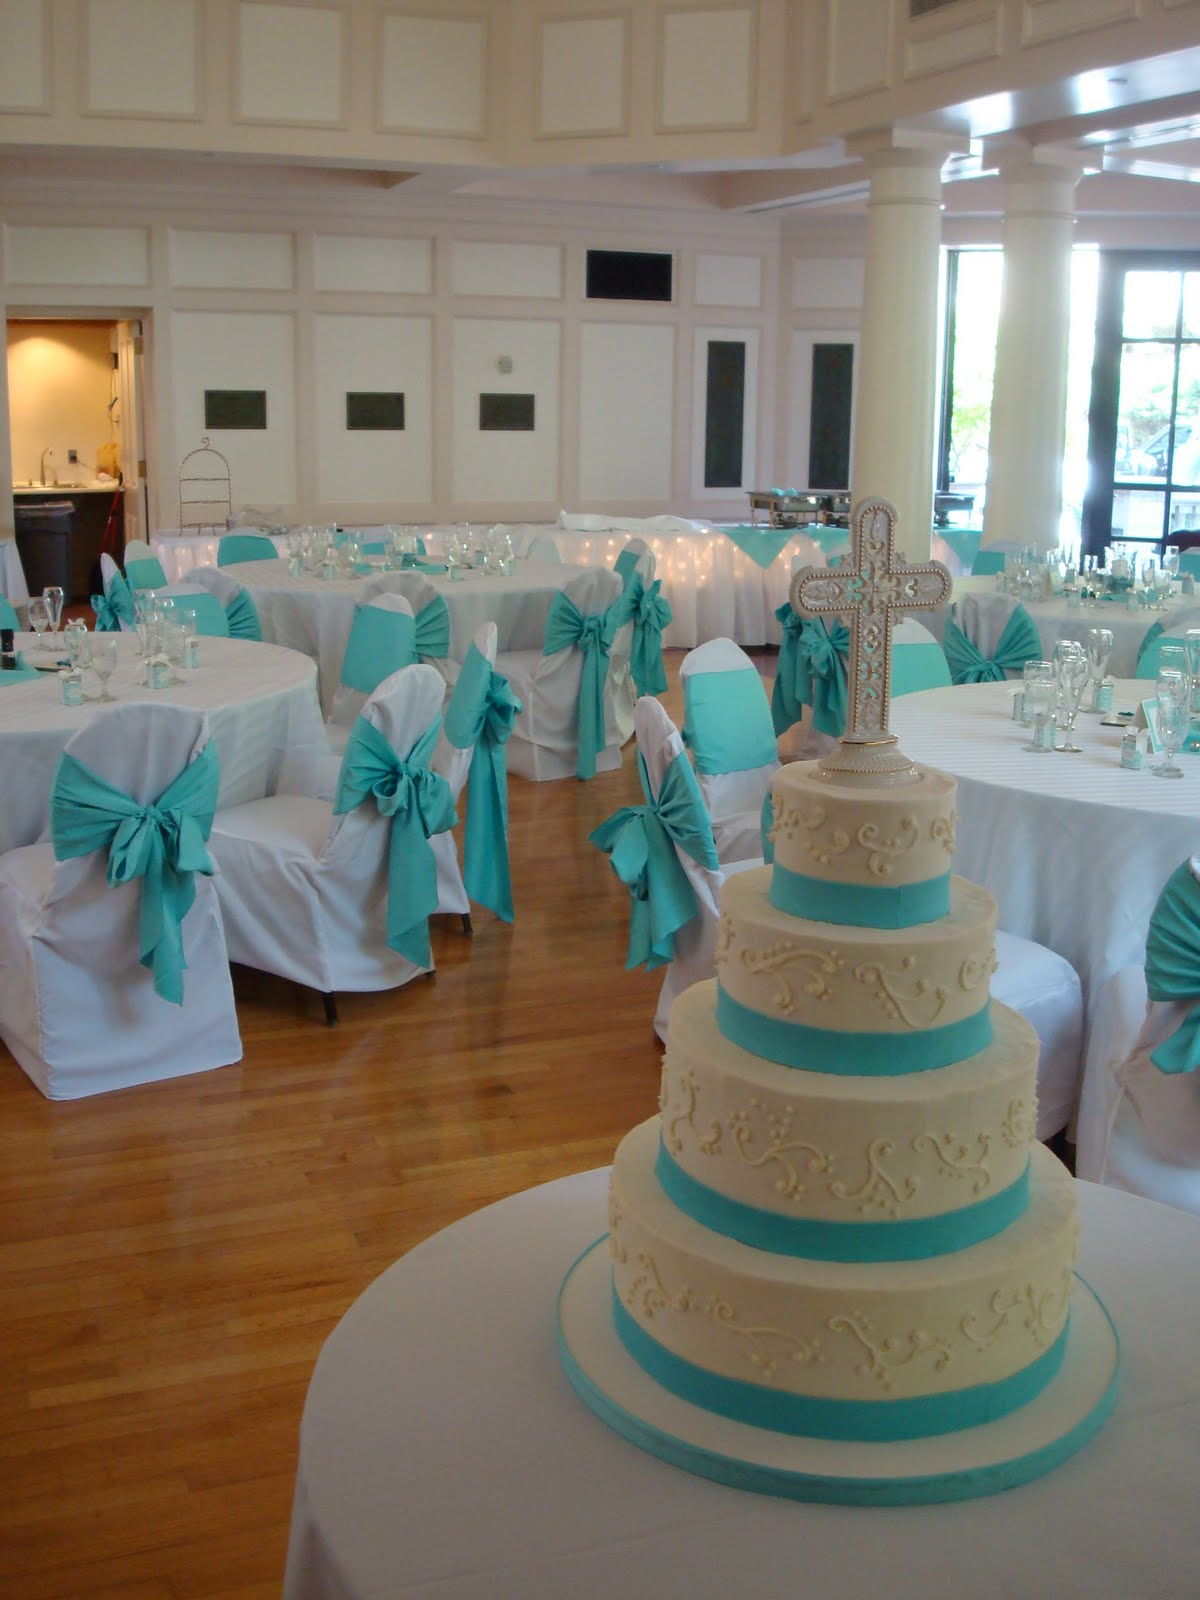 This teal and white wedding